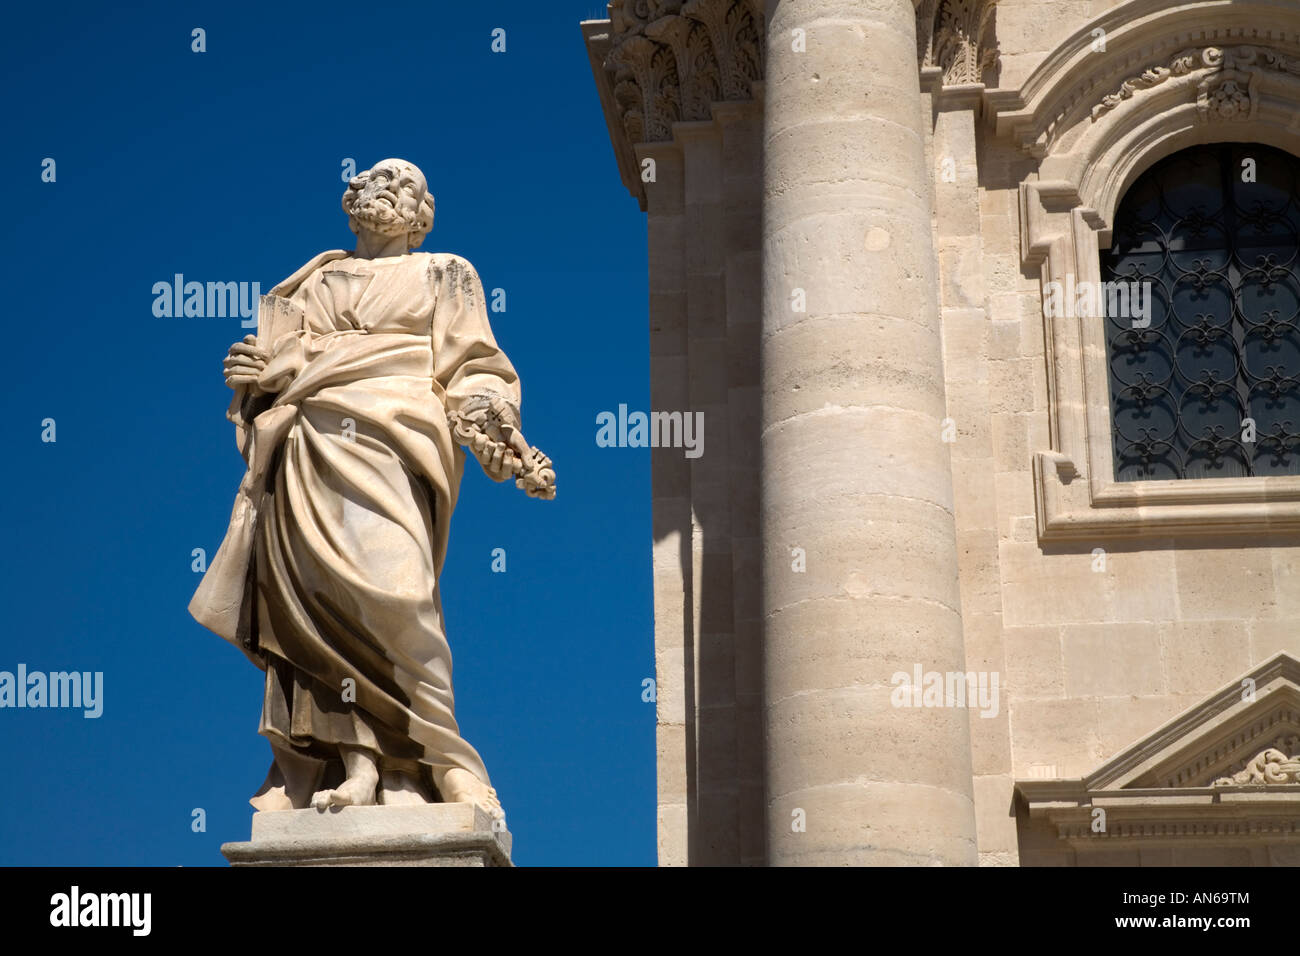 Statue of St Peter the Apostle Duomo Ortygia Siracusa Sicily Italy - Stock Image